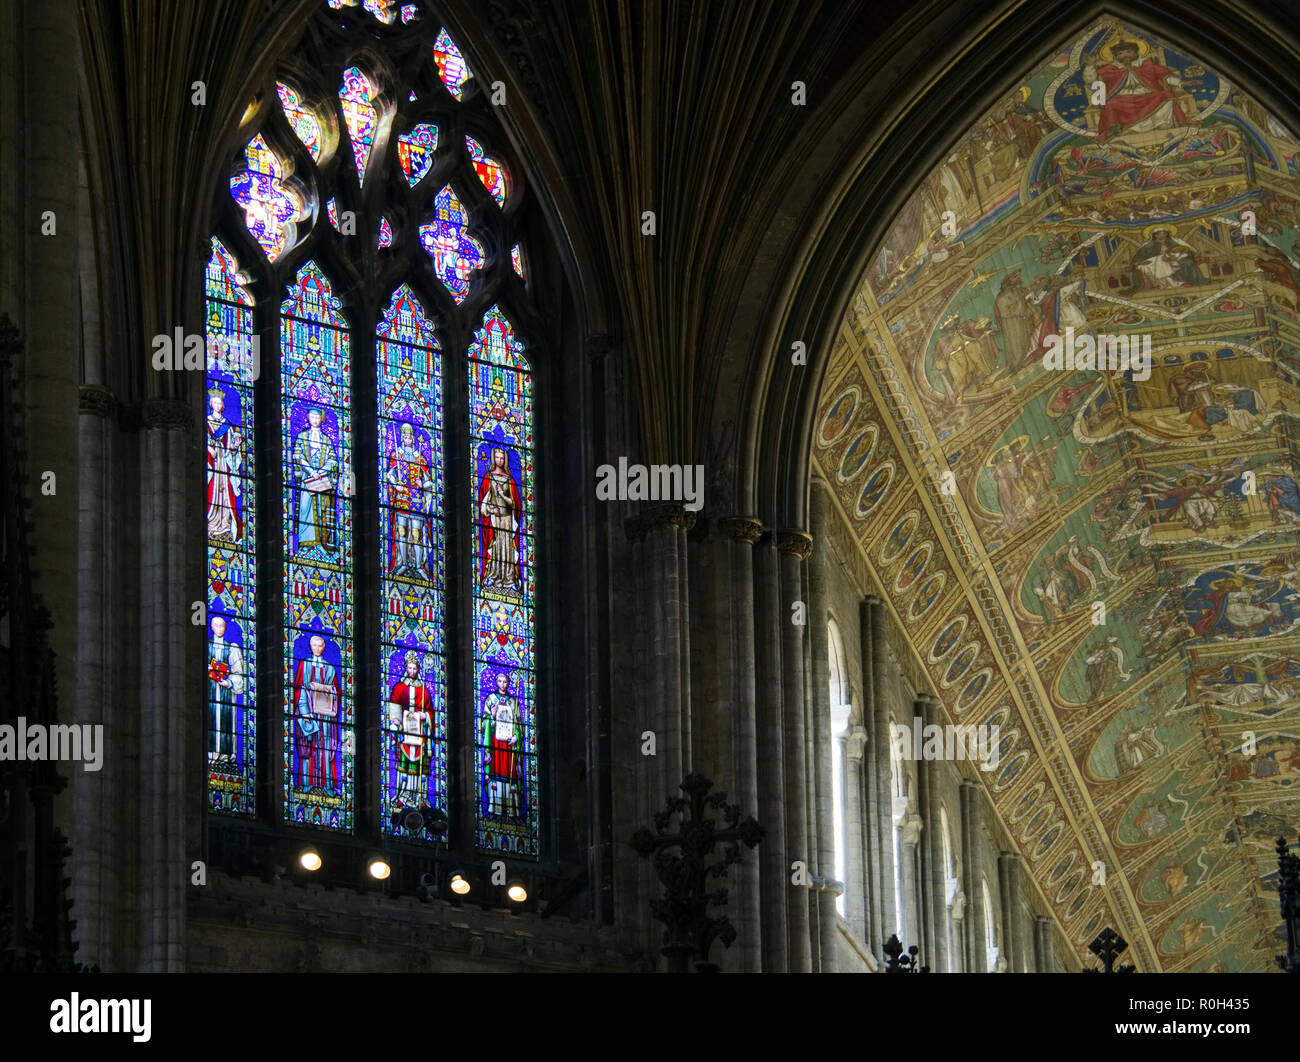 Stained glass window and magnificent painted ceiling in Ely Cathedral, Cambridgeshire. Stock Photo